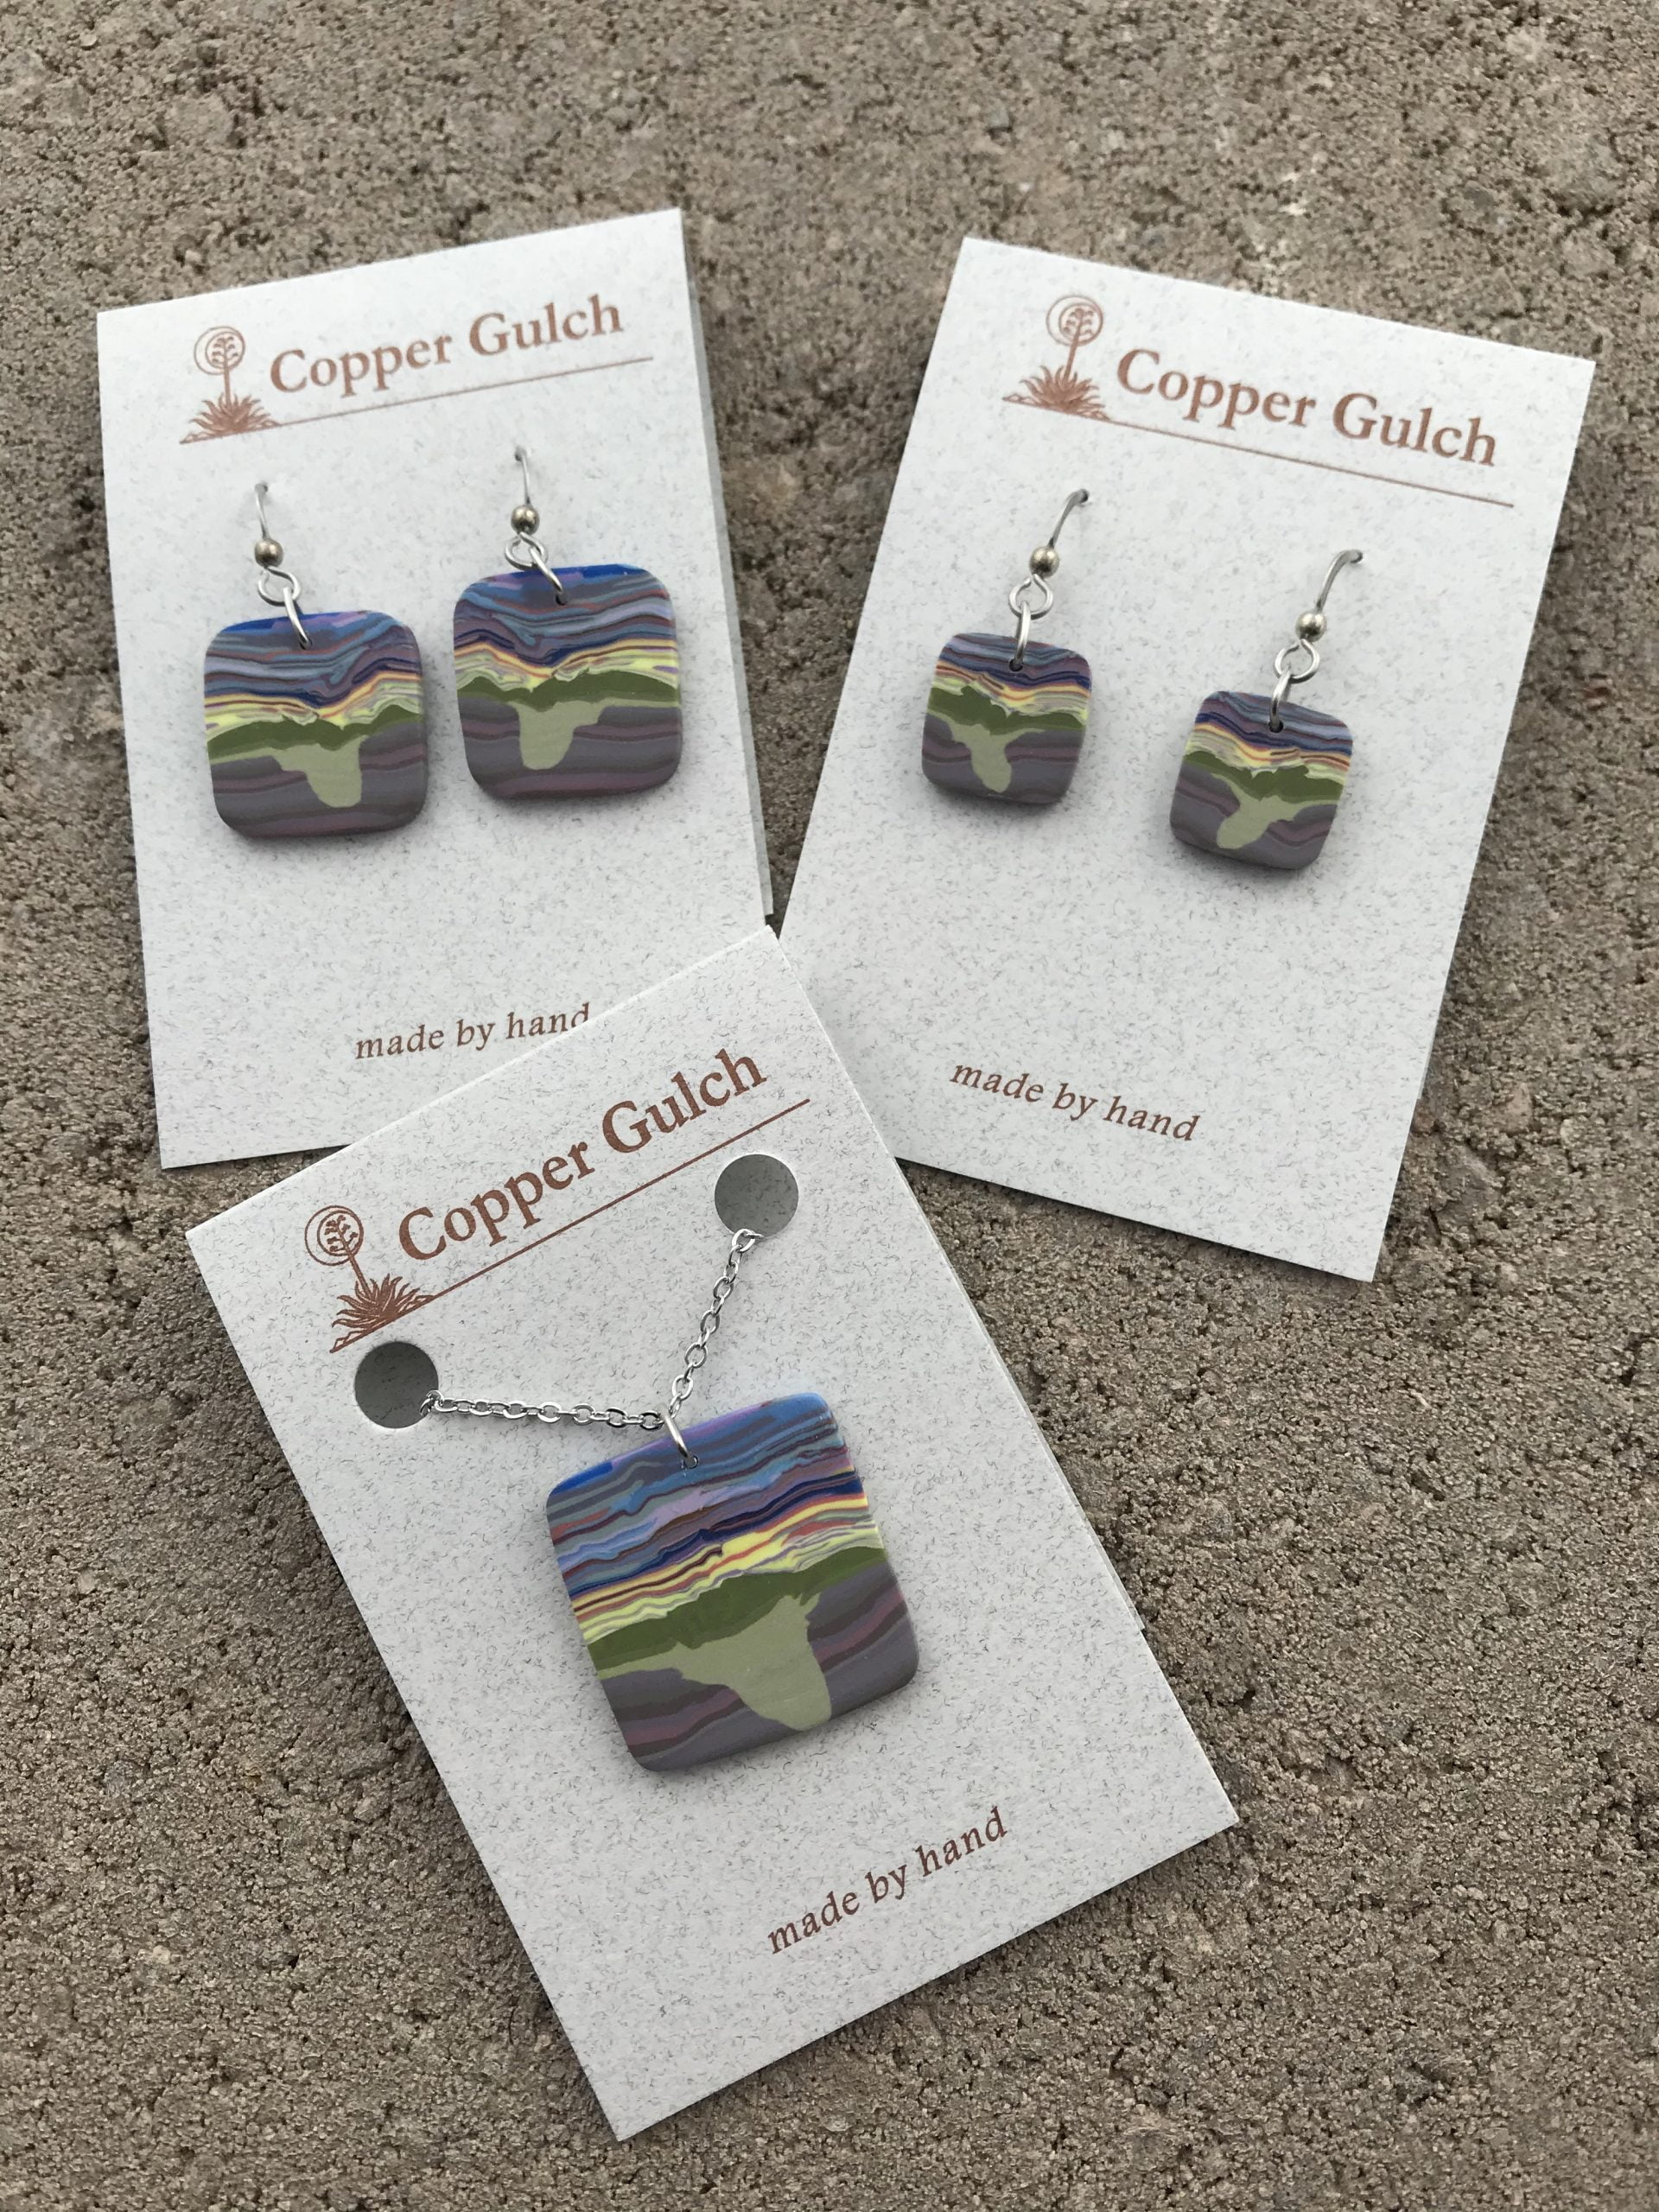 The Polymer Clay Design Jewelry at Copper Gulch Design